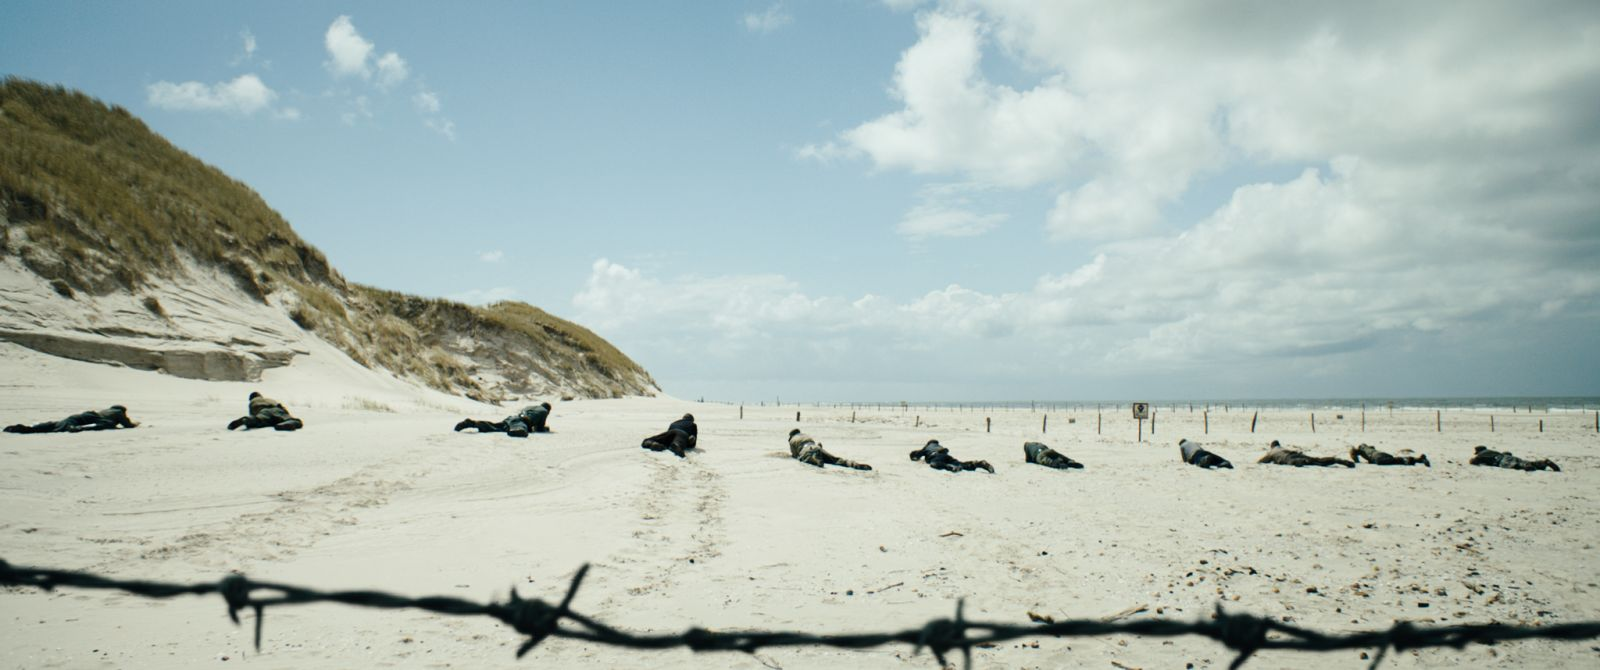 Land of Mine: una suggestiva immagine tratta dal film